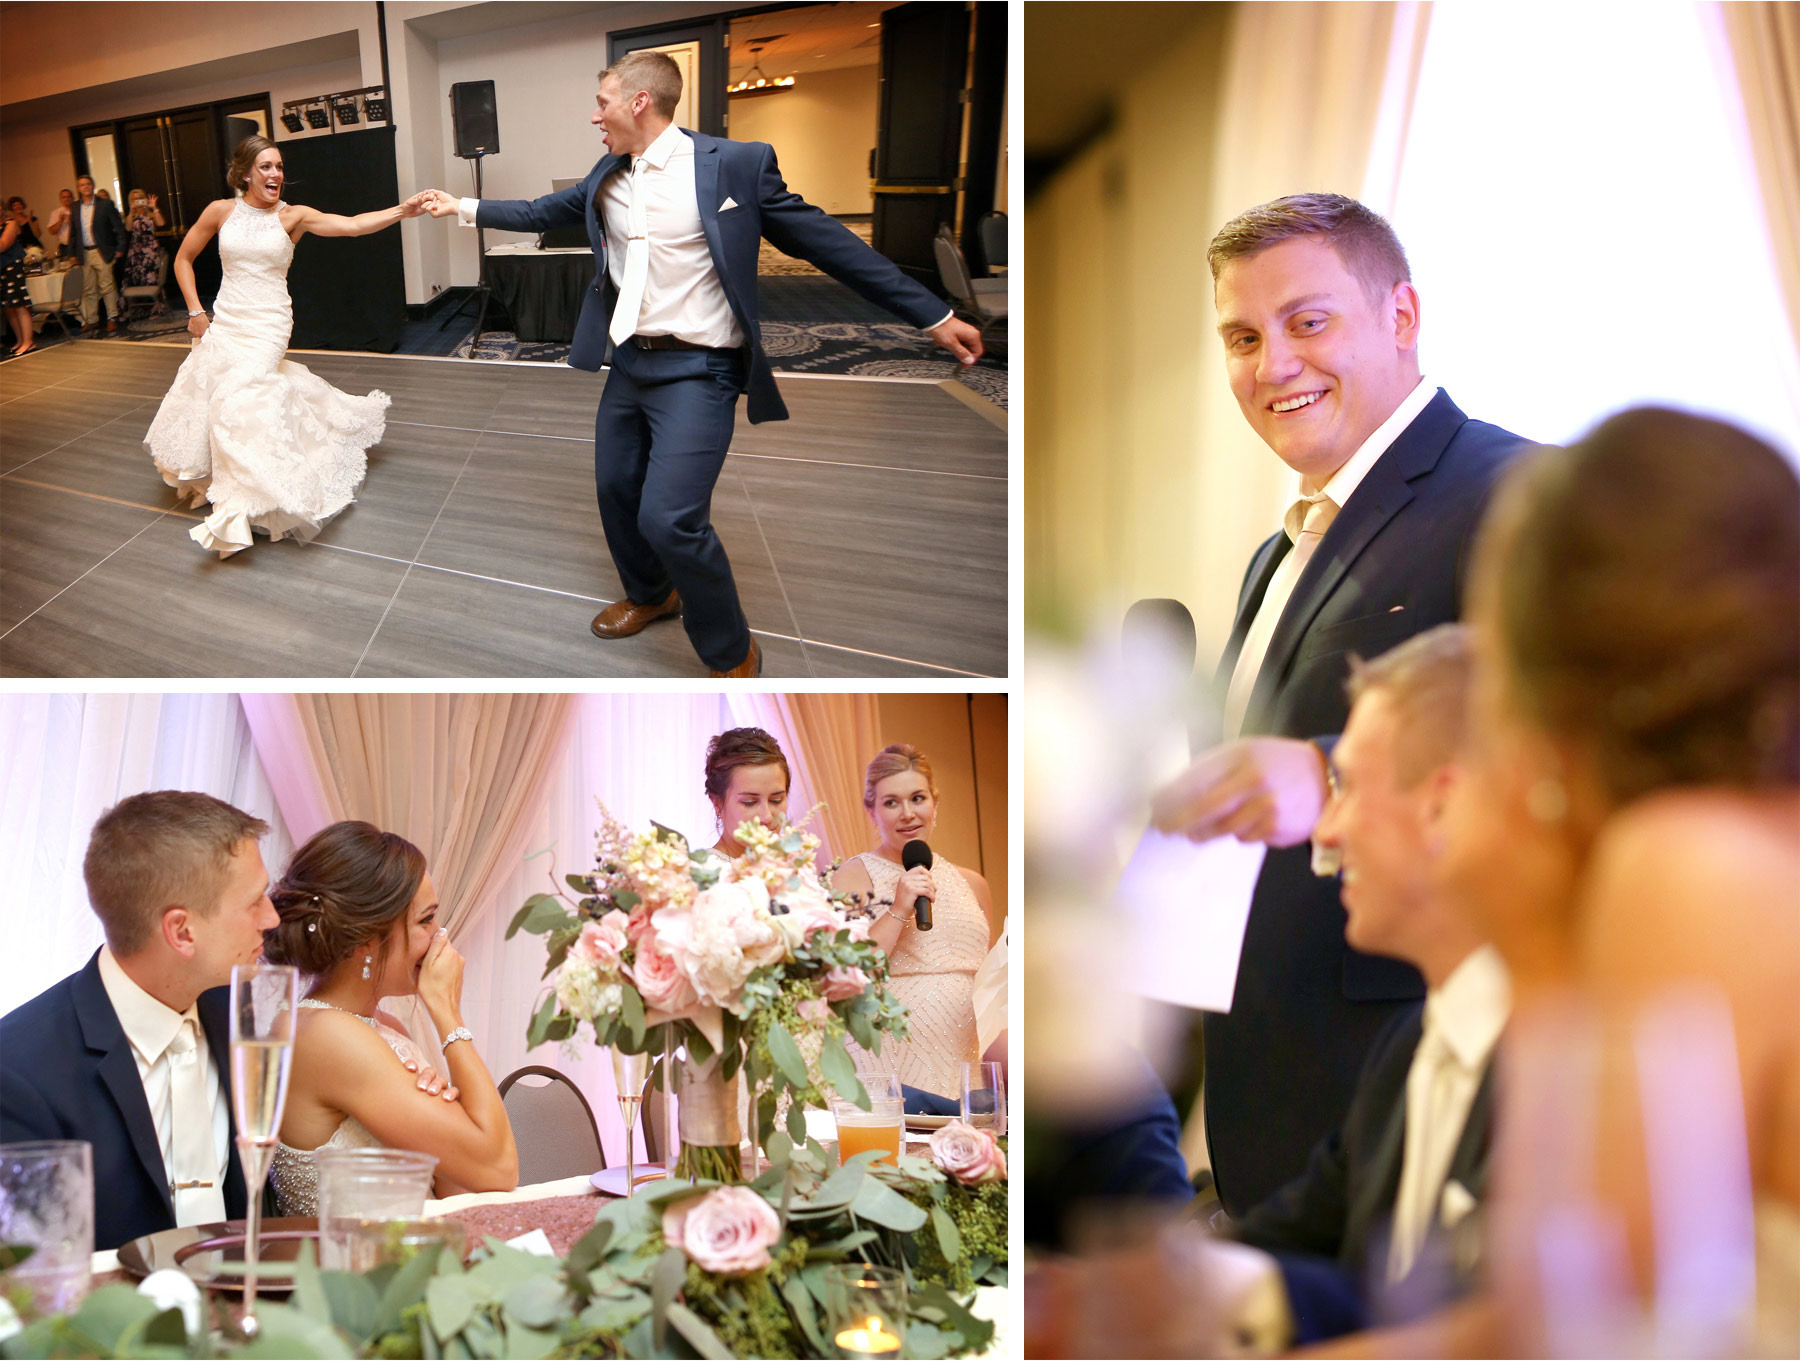 14-Minneapolis-Minnesota-Wedding-Photography-by-Vick-Photography-Graduate-Hotel-Reception-Brianna-and-Bryce.jpg